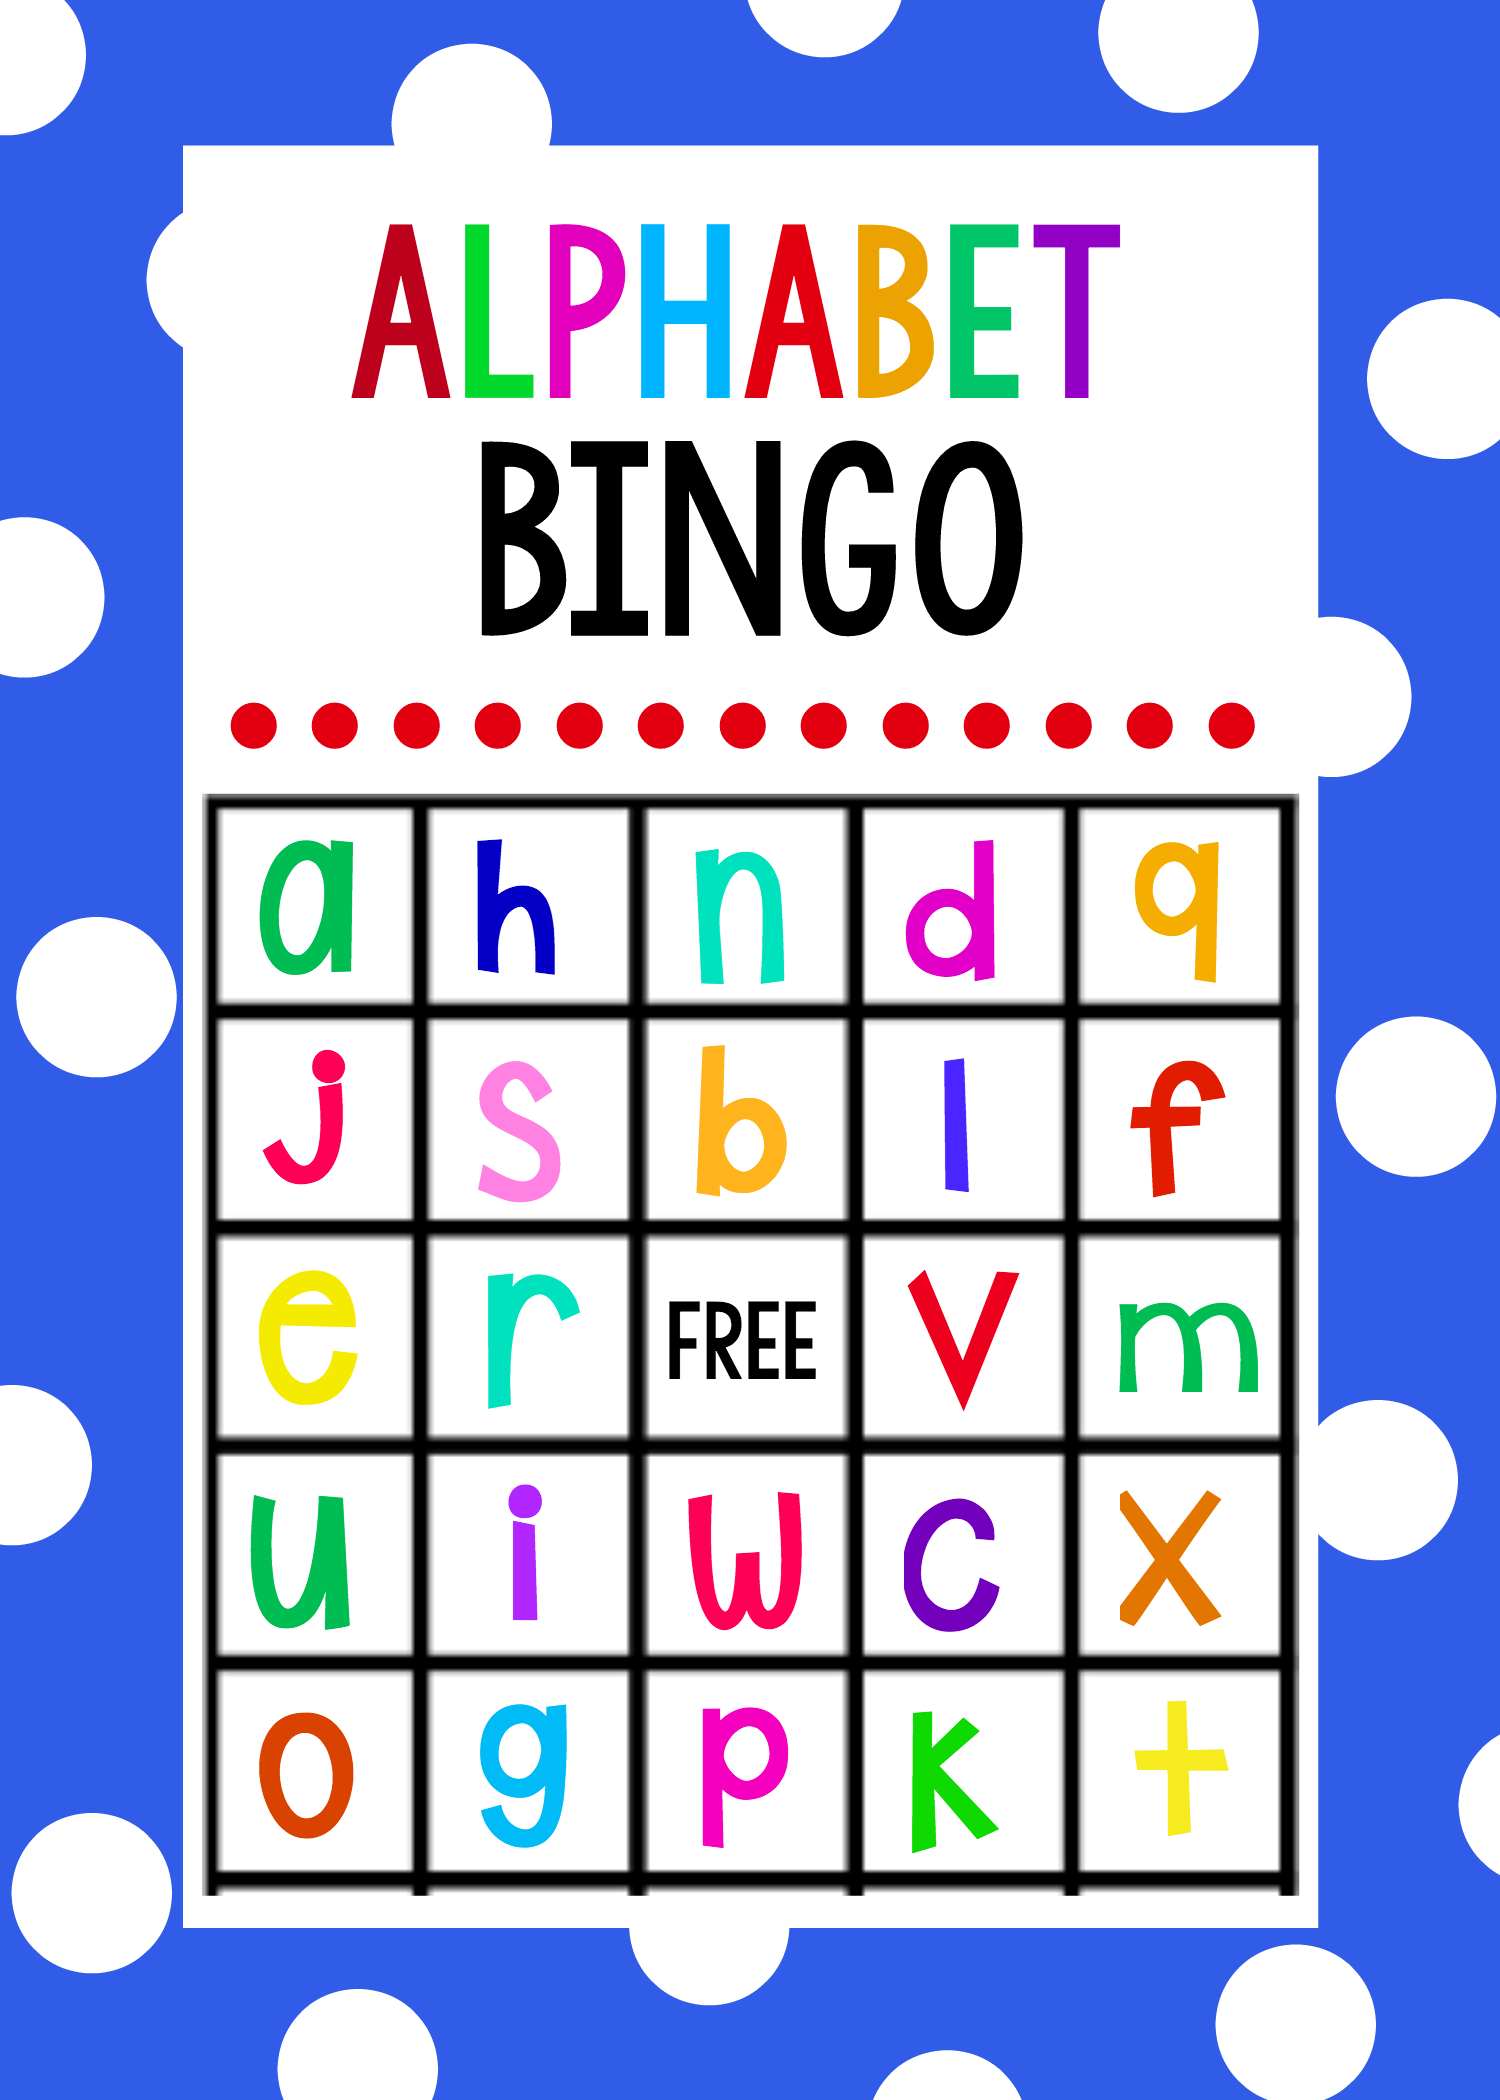 graphic regarding Printable Bingo Game Patterns called Lowercase Alphabet Bingo Activity - Outrageous Small Assignments